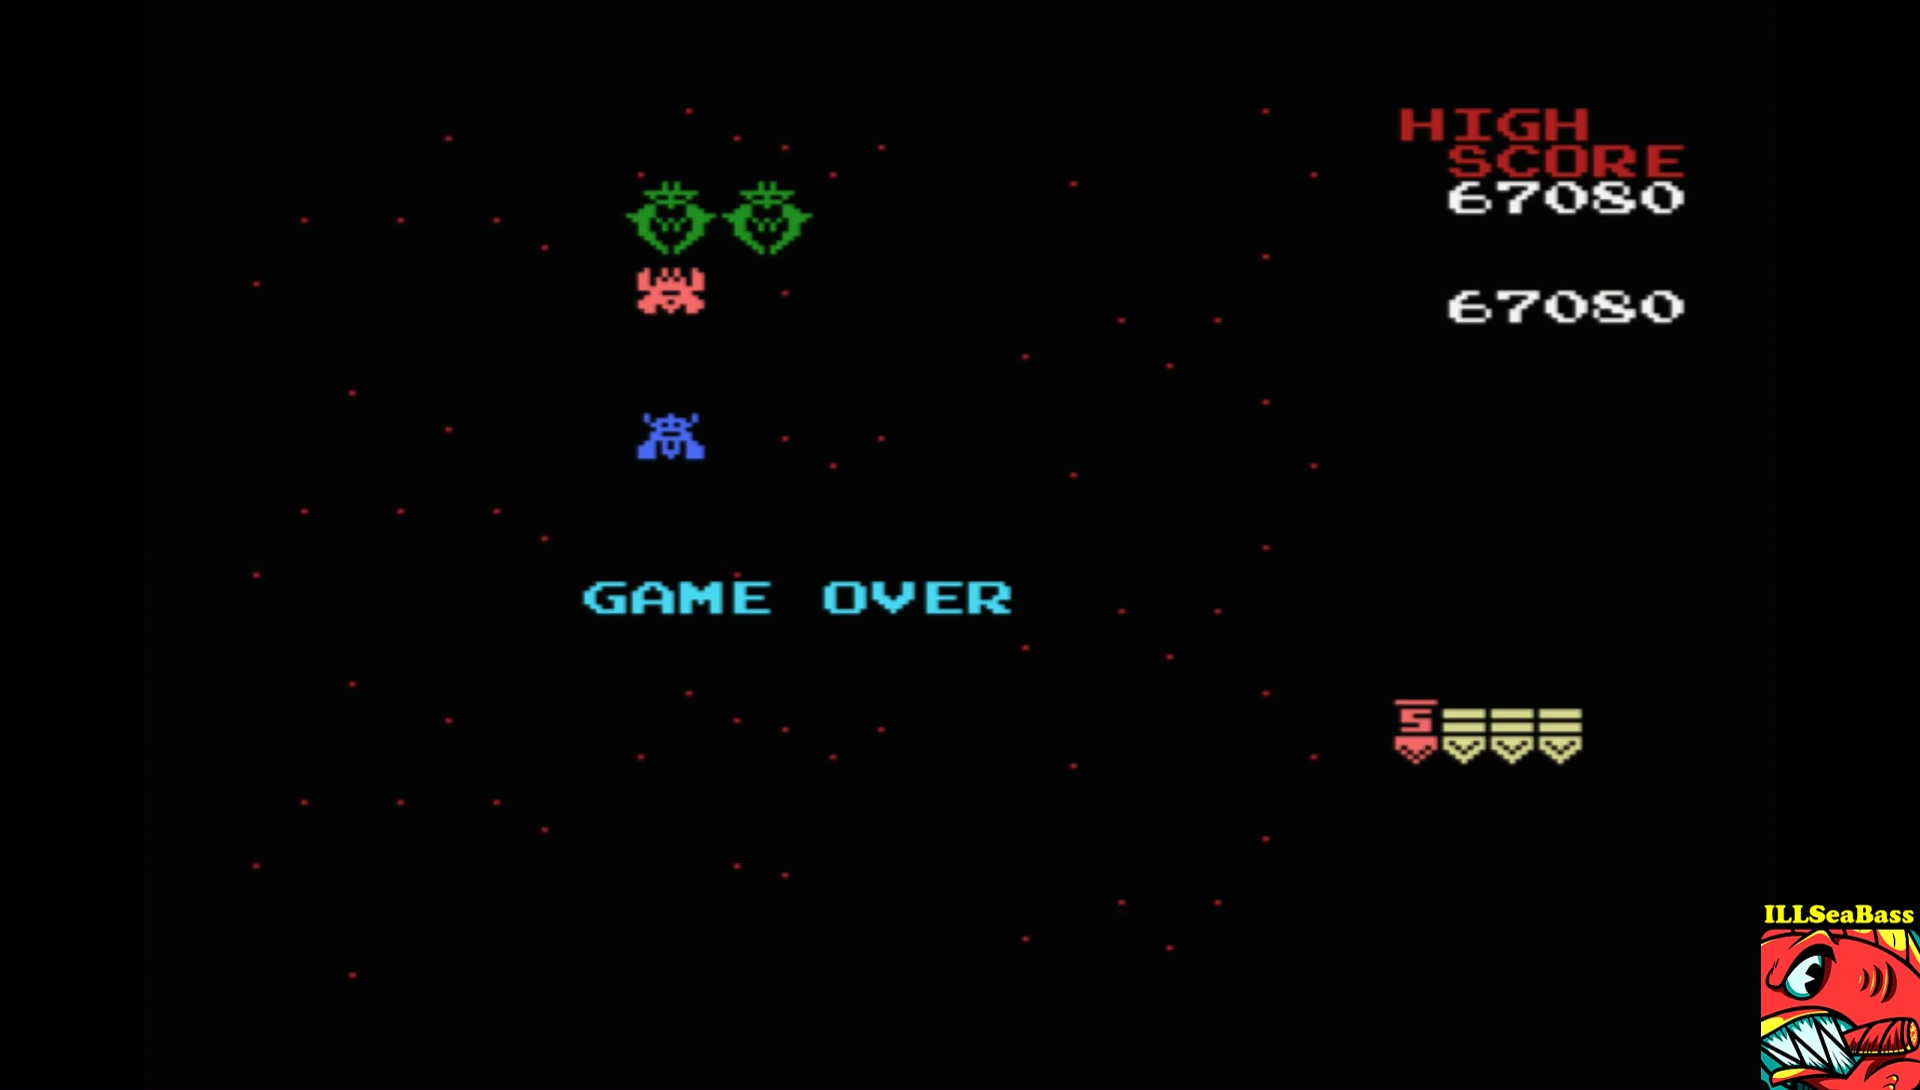 ILLSeaBass: Galaga (MSX Emulated) 67,080 points on 2017-07-23 22:02:05